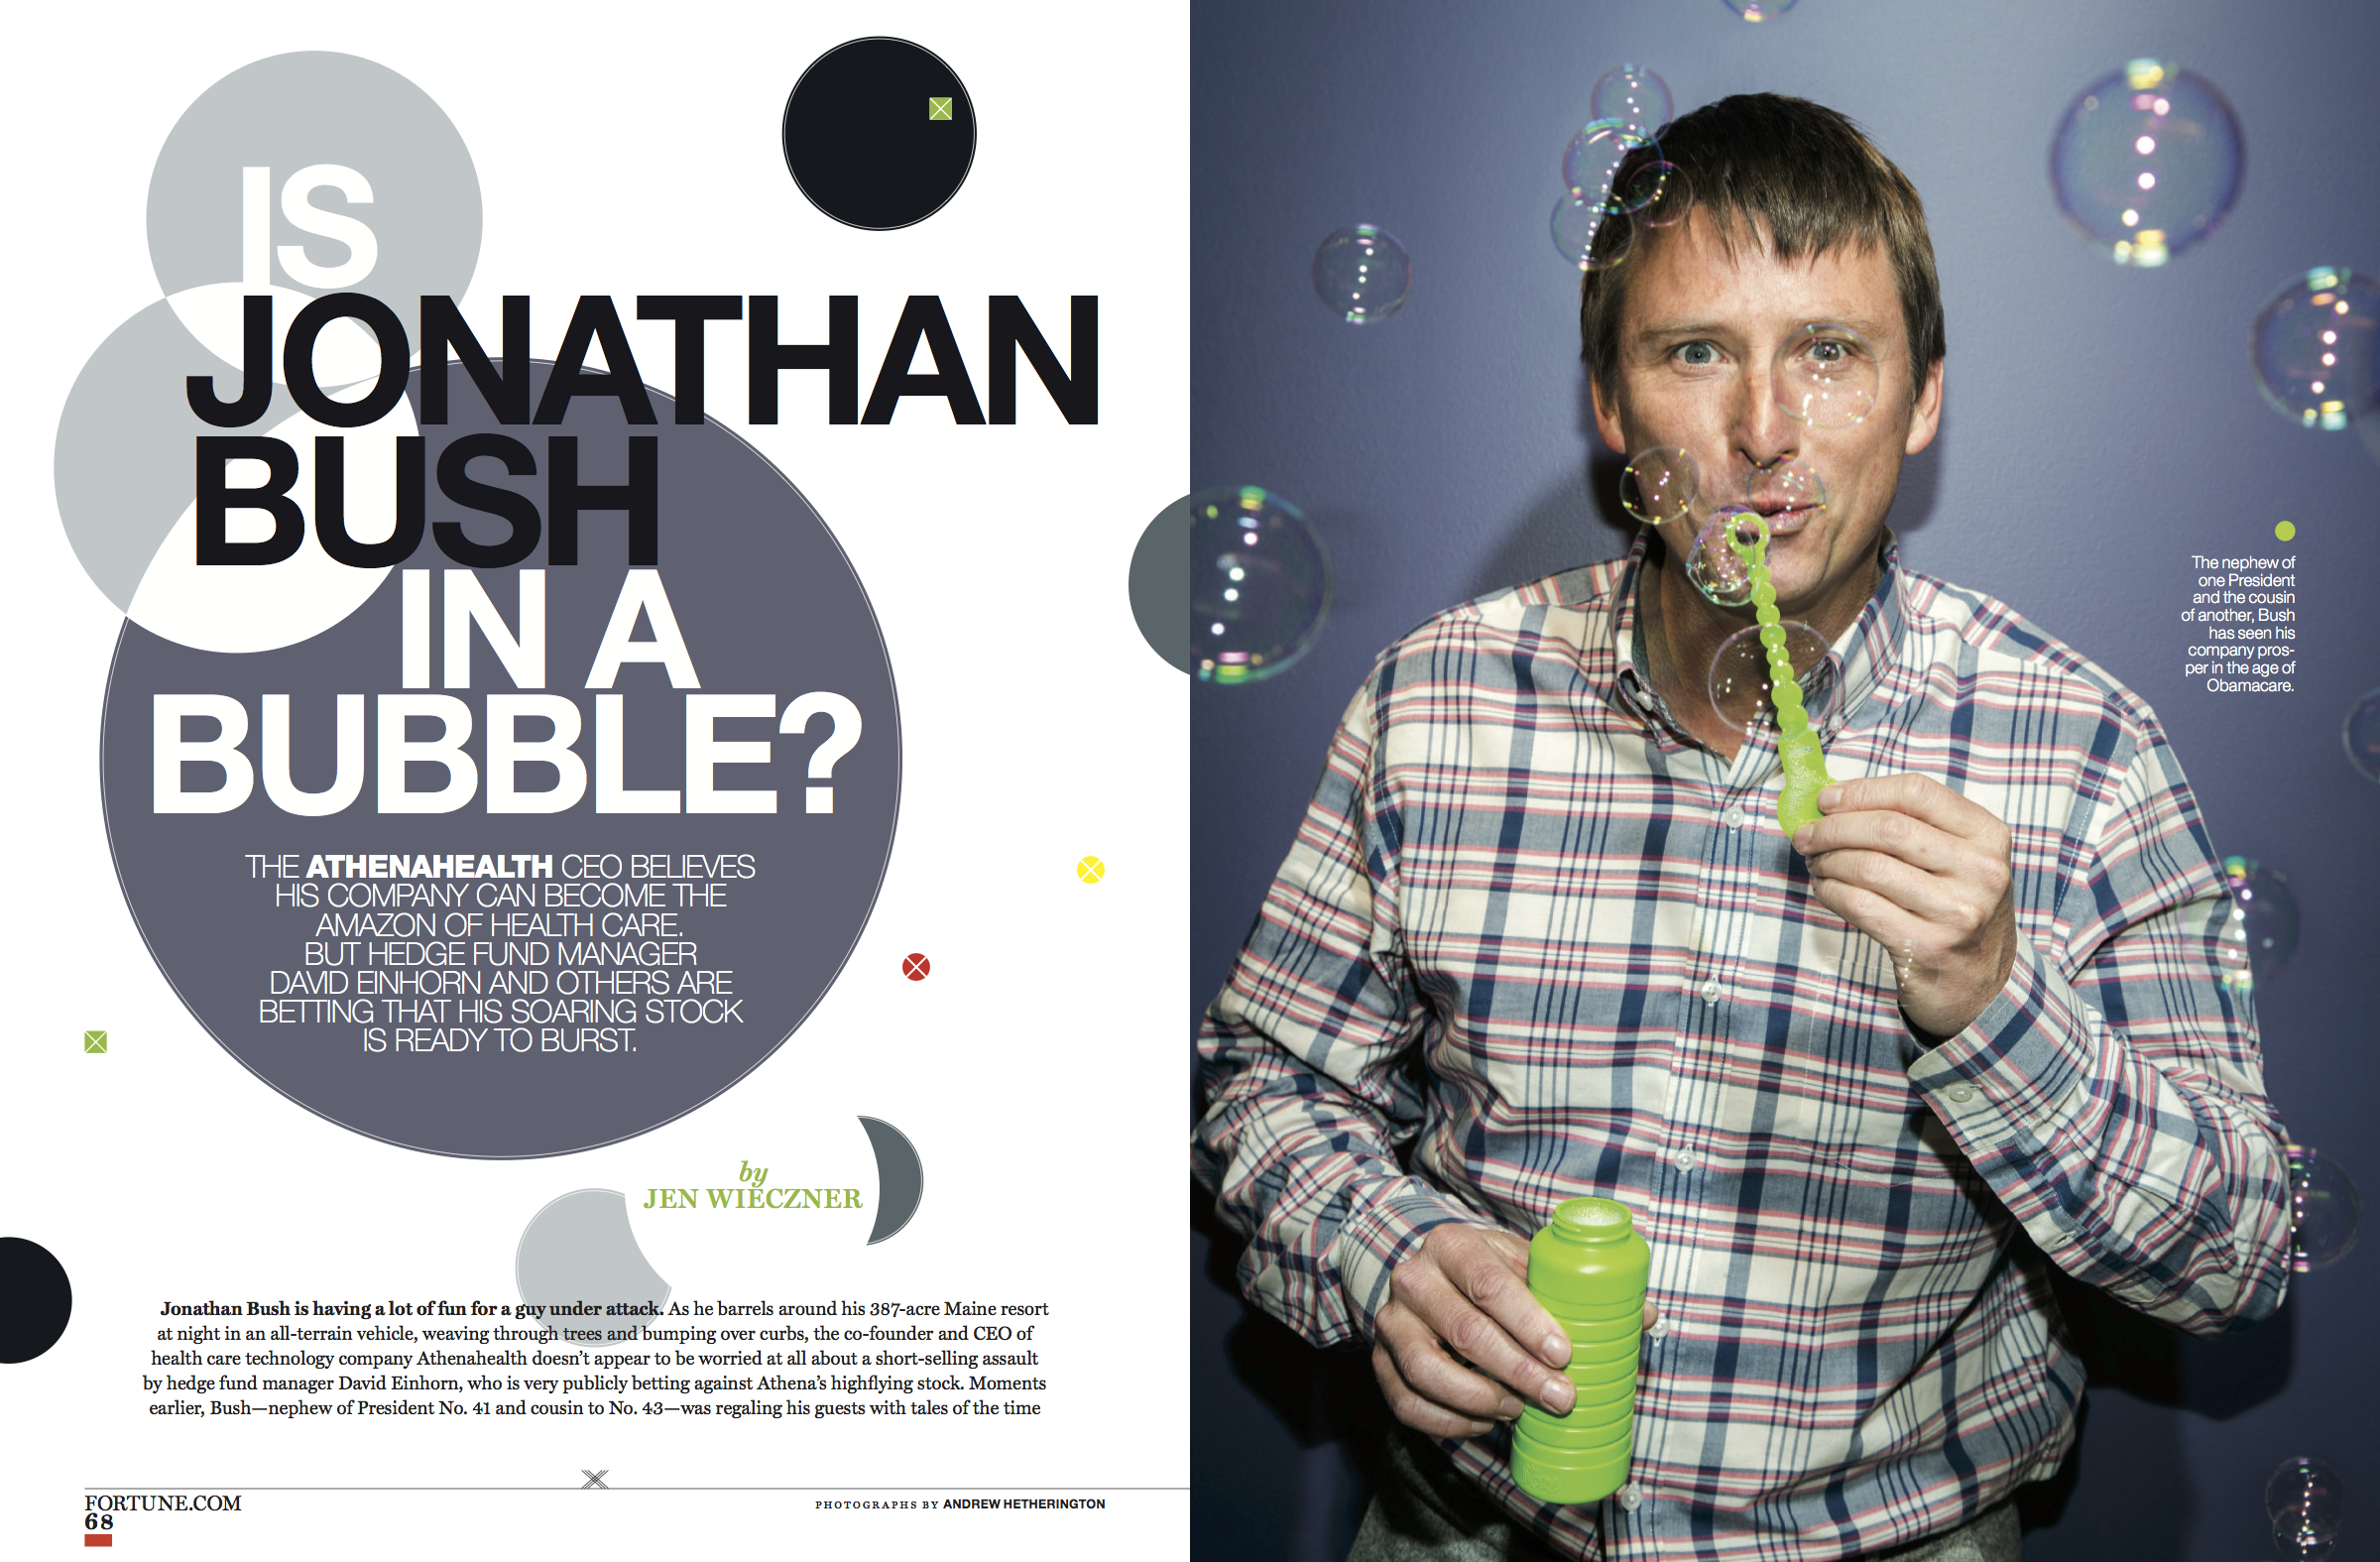 """""""Is Athenahealth CEO Jonathan Bush in a Bubble?"""" Fortune, December 2014"""